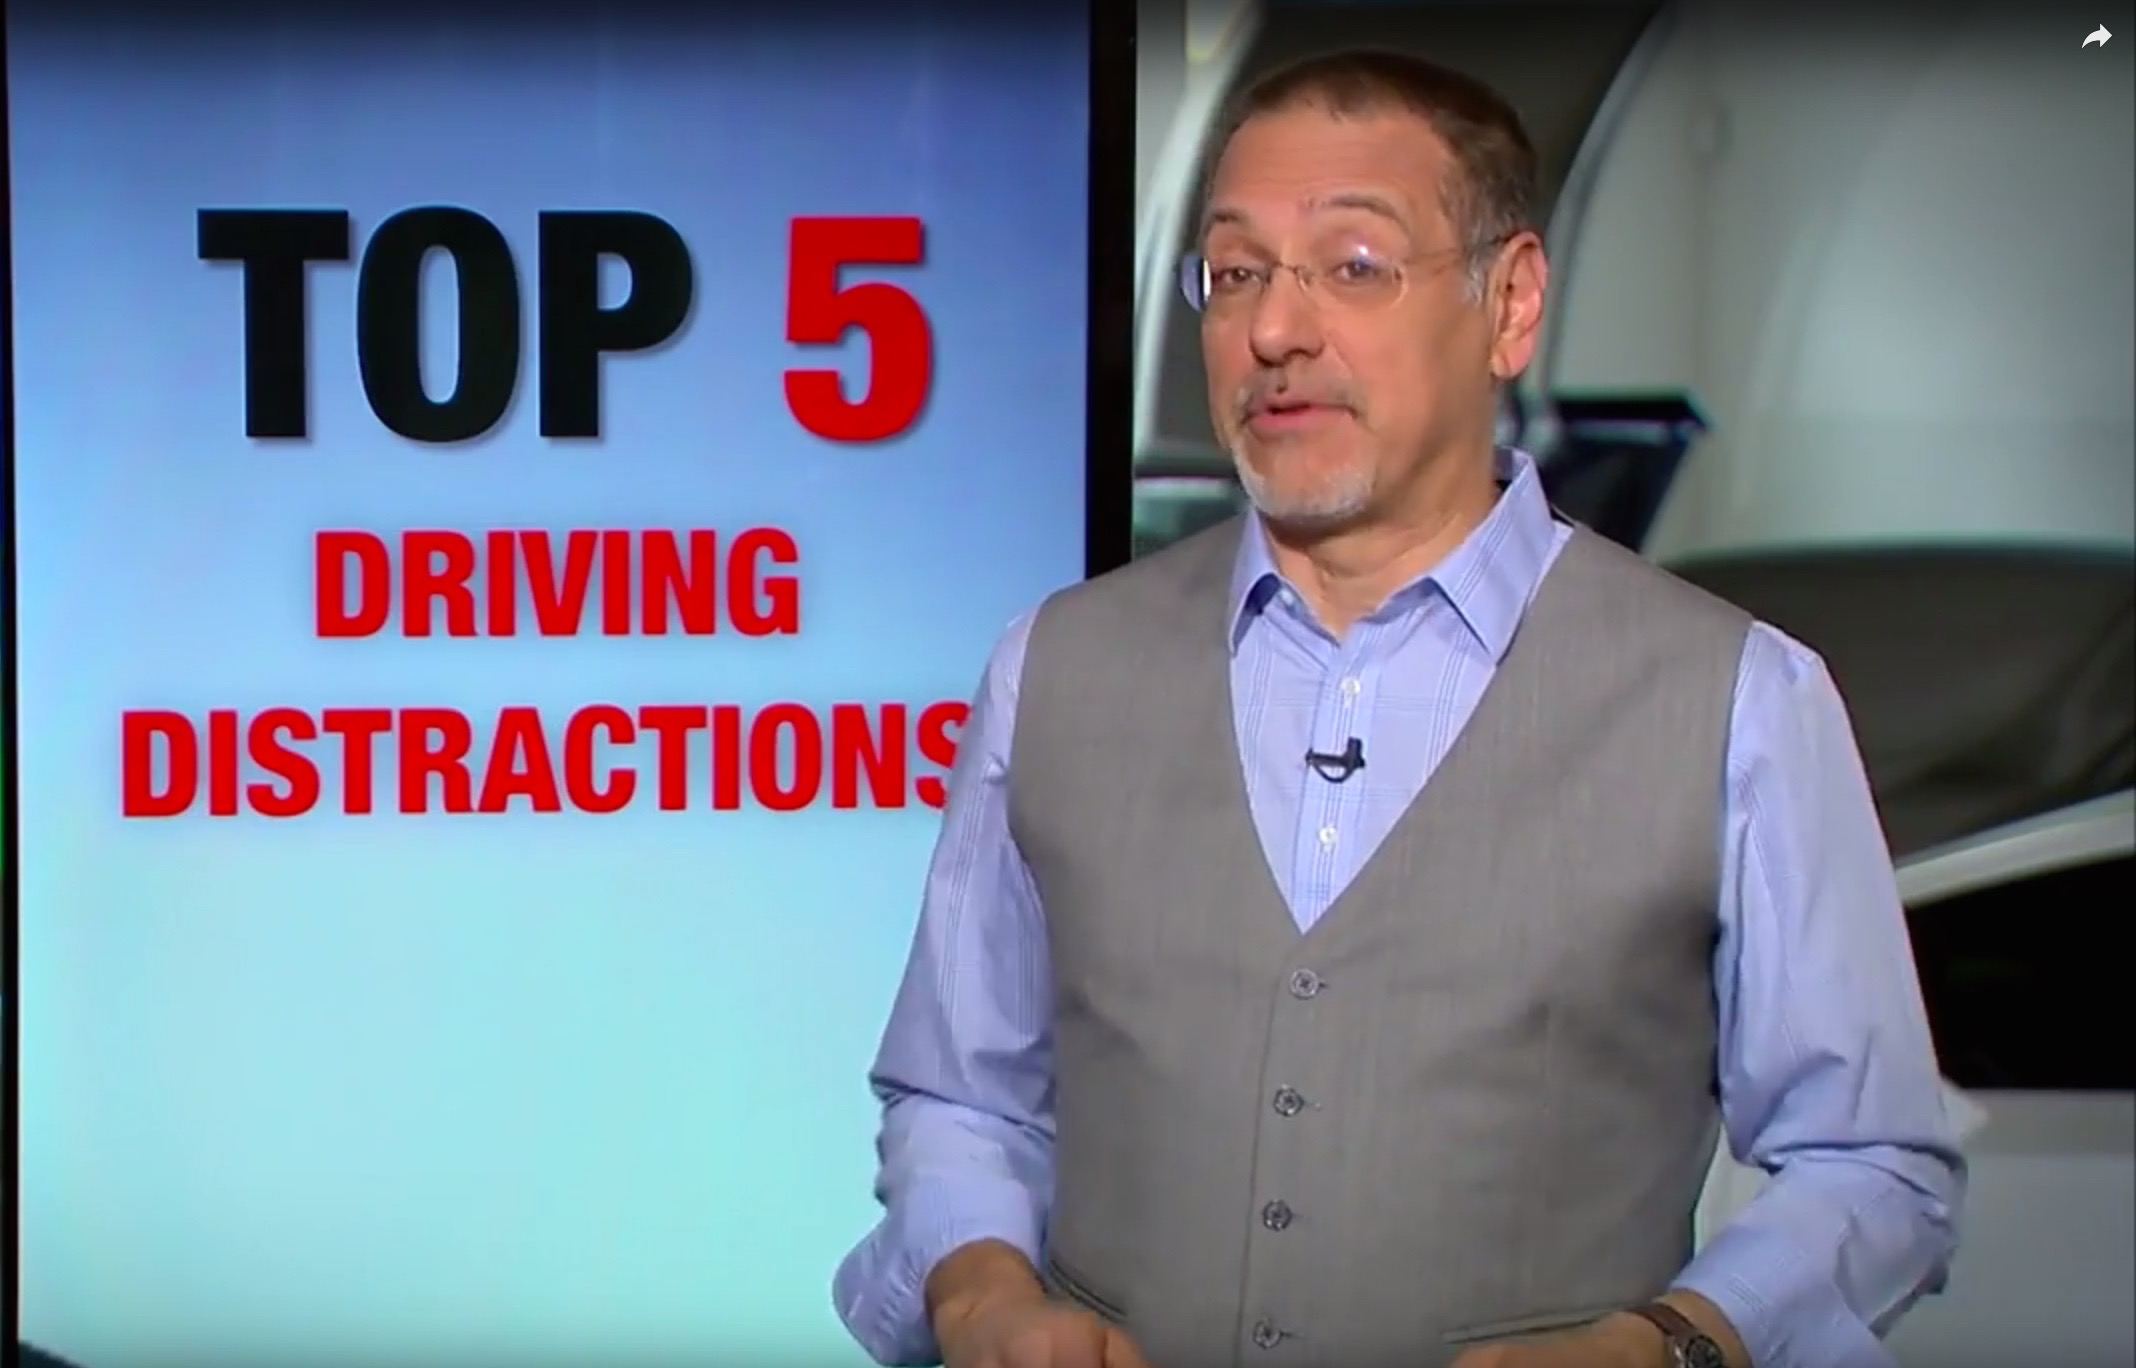 Top Five Driving Distractions